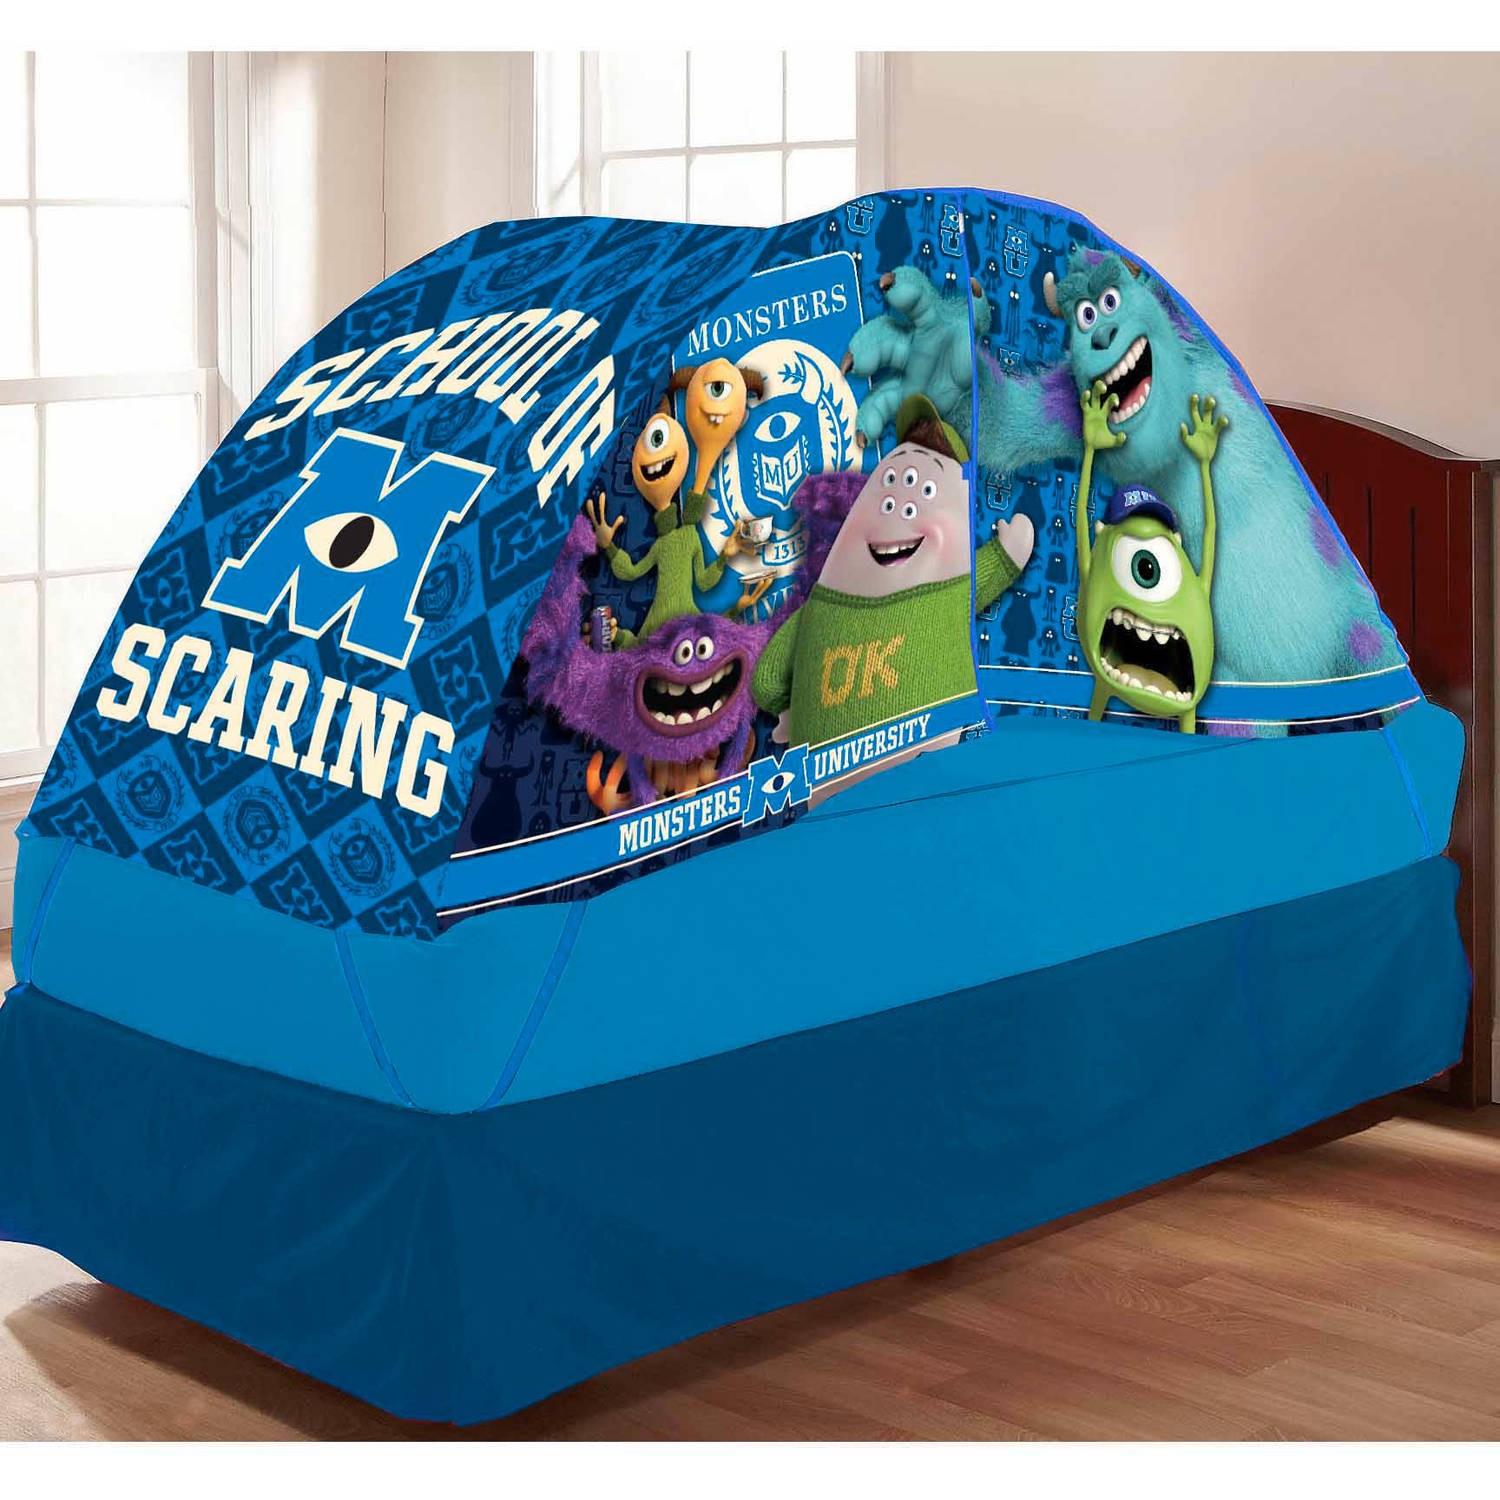 Monster S University Bed Tent With Pushlight Walmart Com